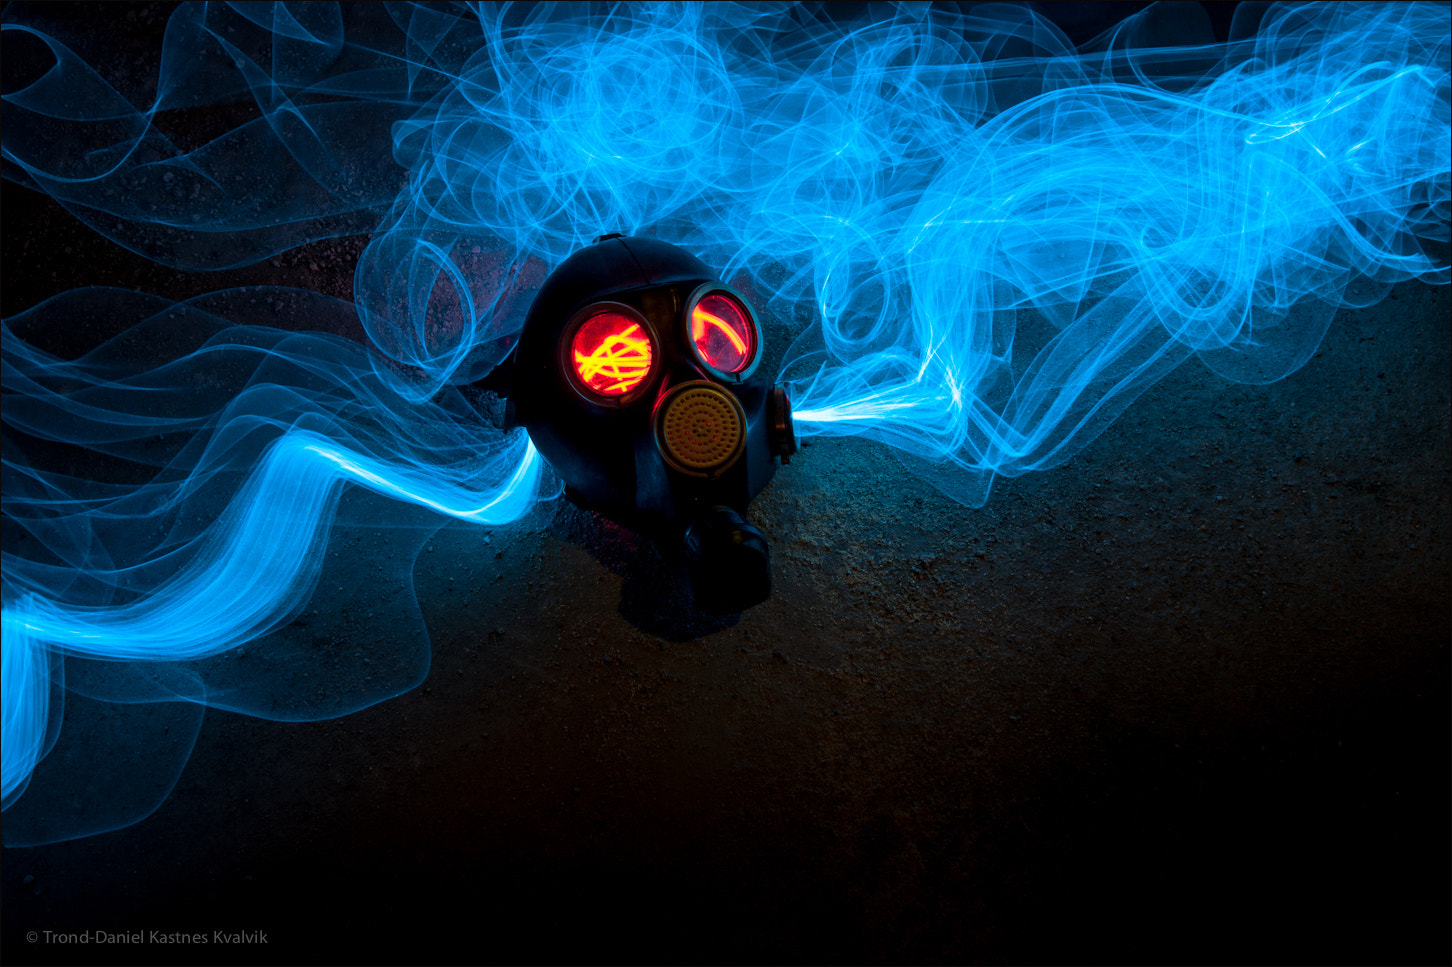 Photograph Gas mask. by Trond-Daniel Kvalvik on 500px